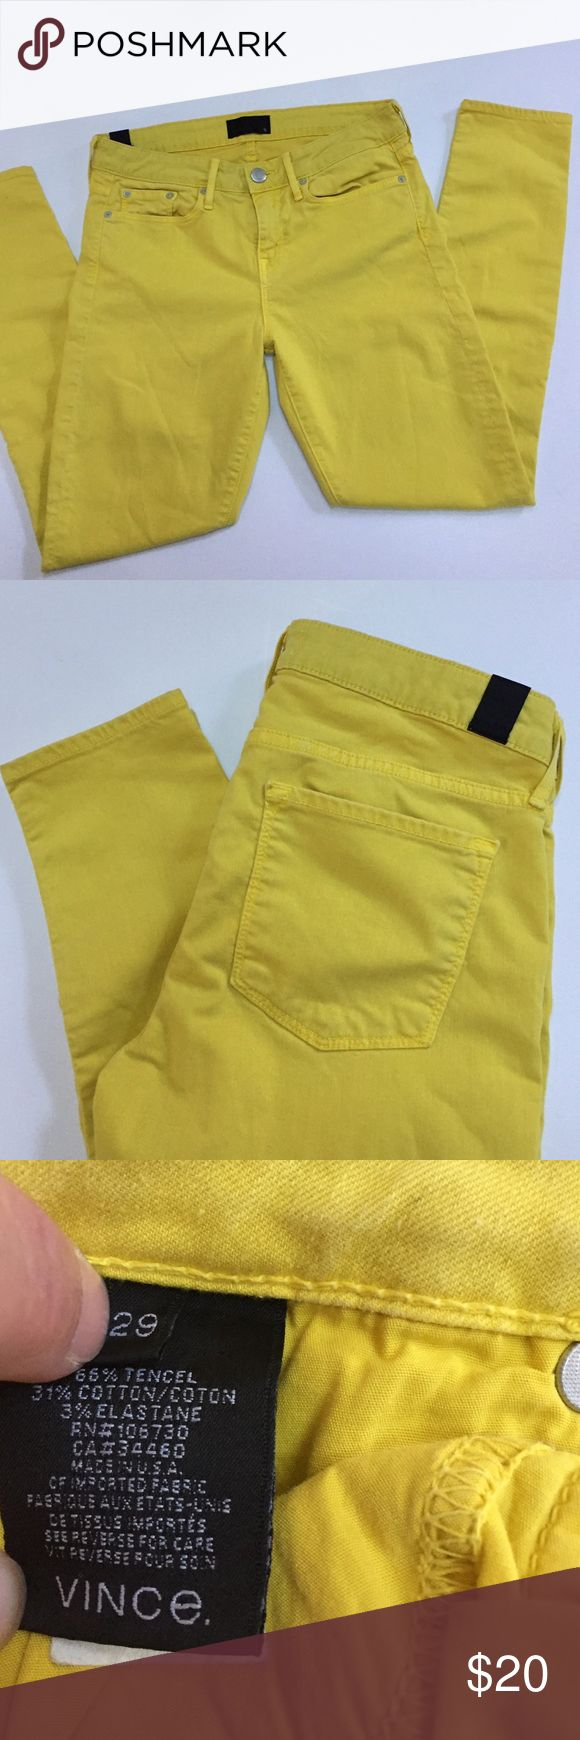 "Vince yellow skinny jeans This is a pair of gently worn skinny jeans from Vince. Size 29. Approximate length is 36.5"", approximate inseam is 27"" and approximate waist measurement is 15.5"". Vince Jeans Skinny"